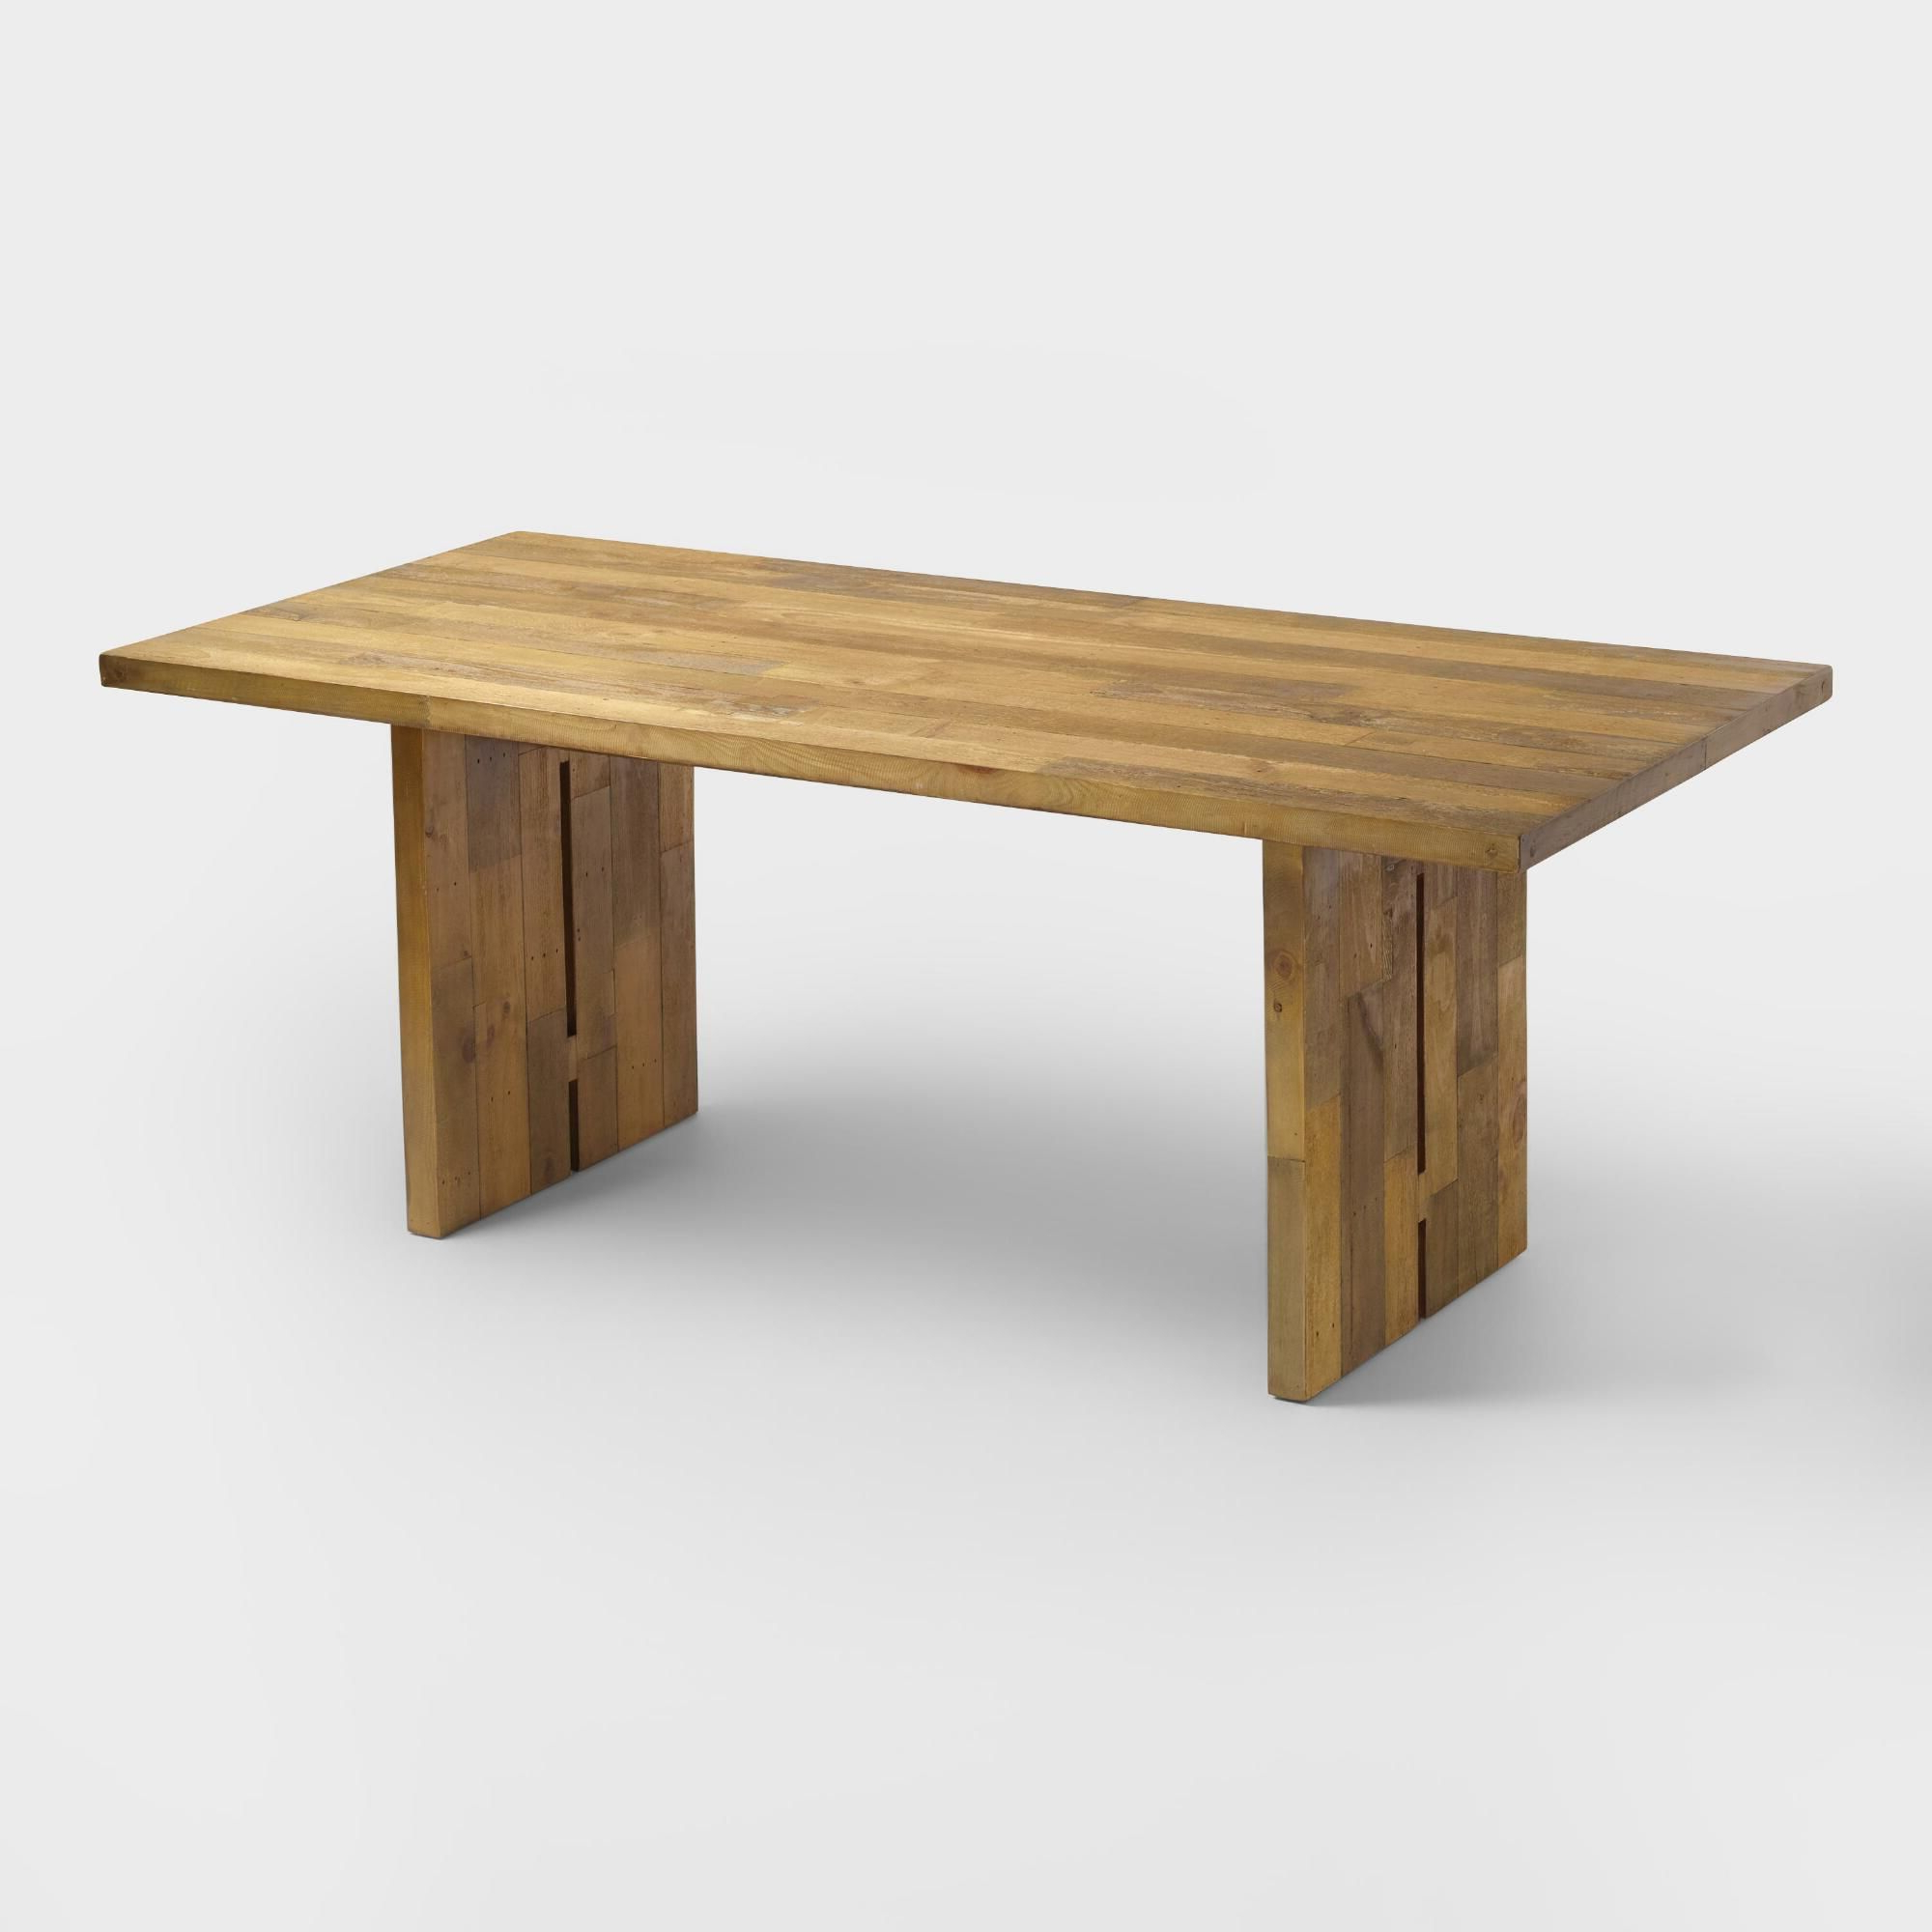 Newest Reclaimed Pine Nolan Dining Table: Natural - Woodworld throughout Nolan Round Pedestal Dining Tables